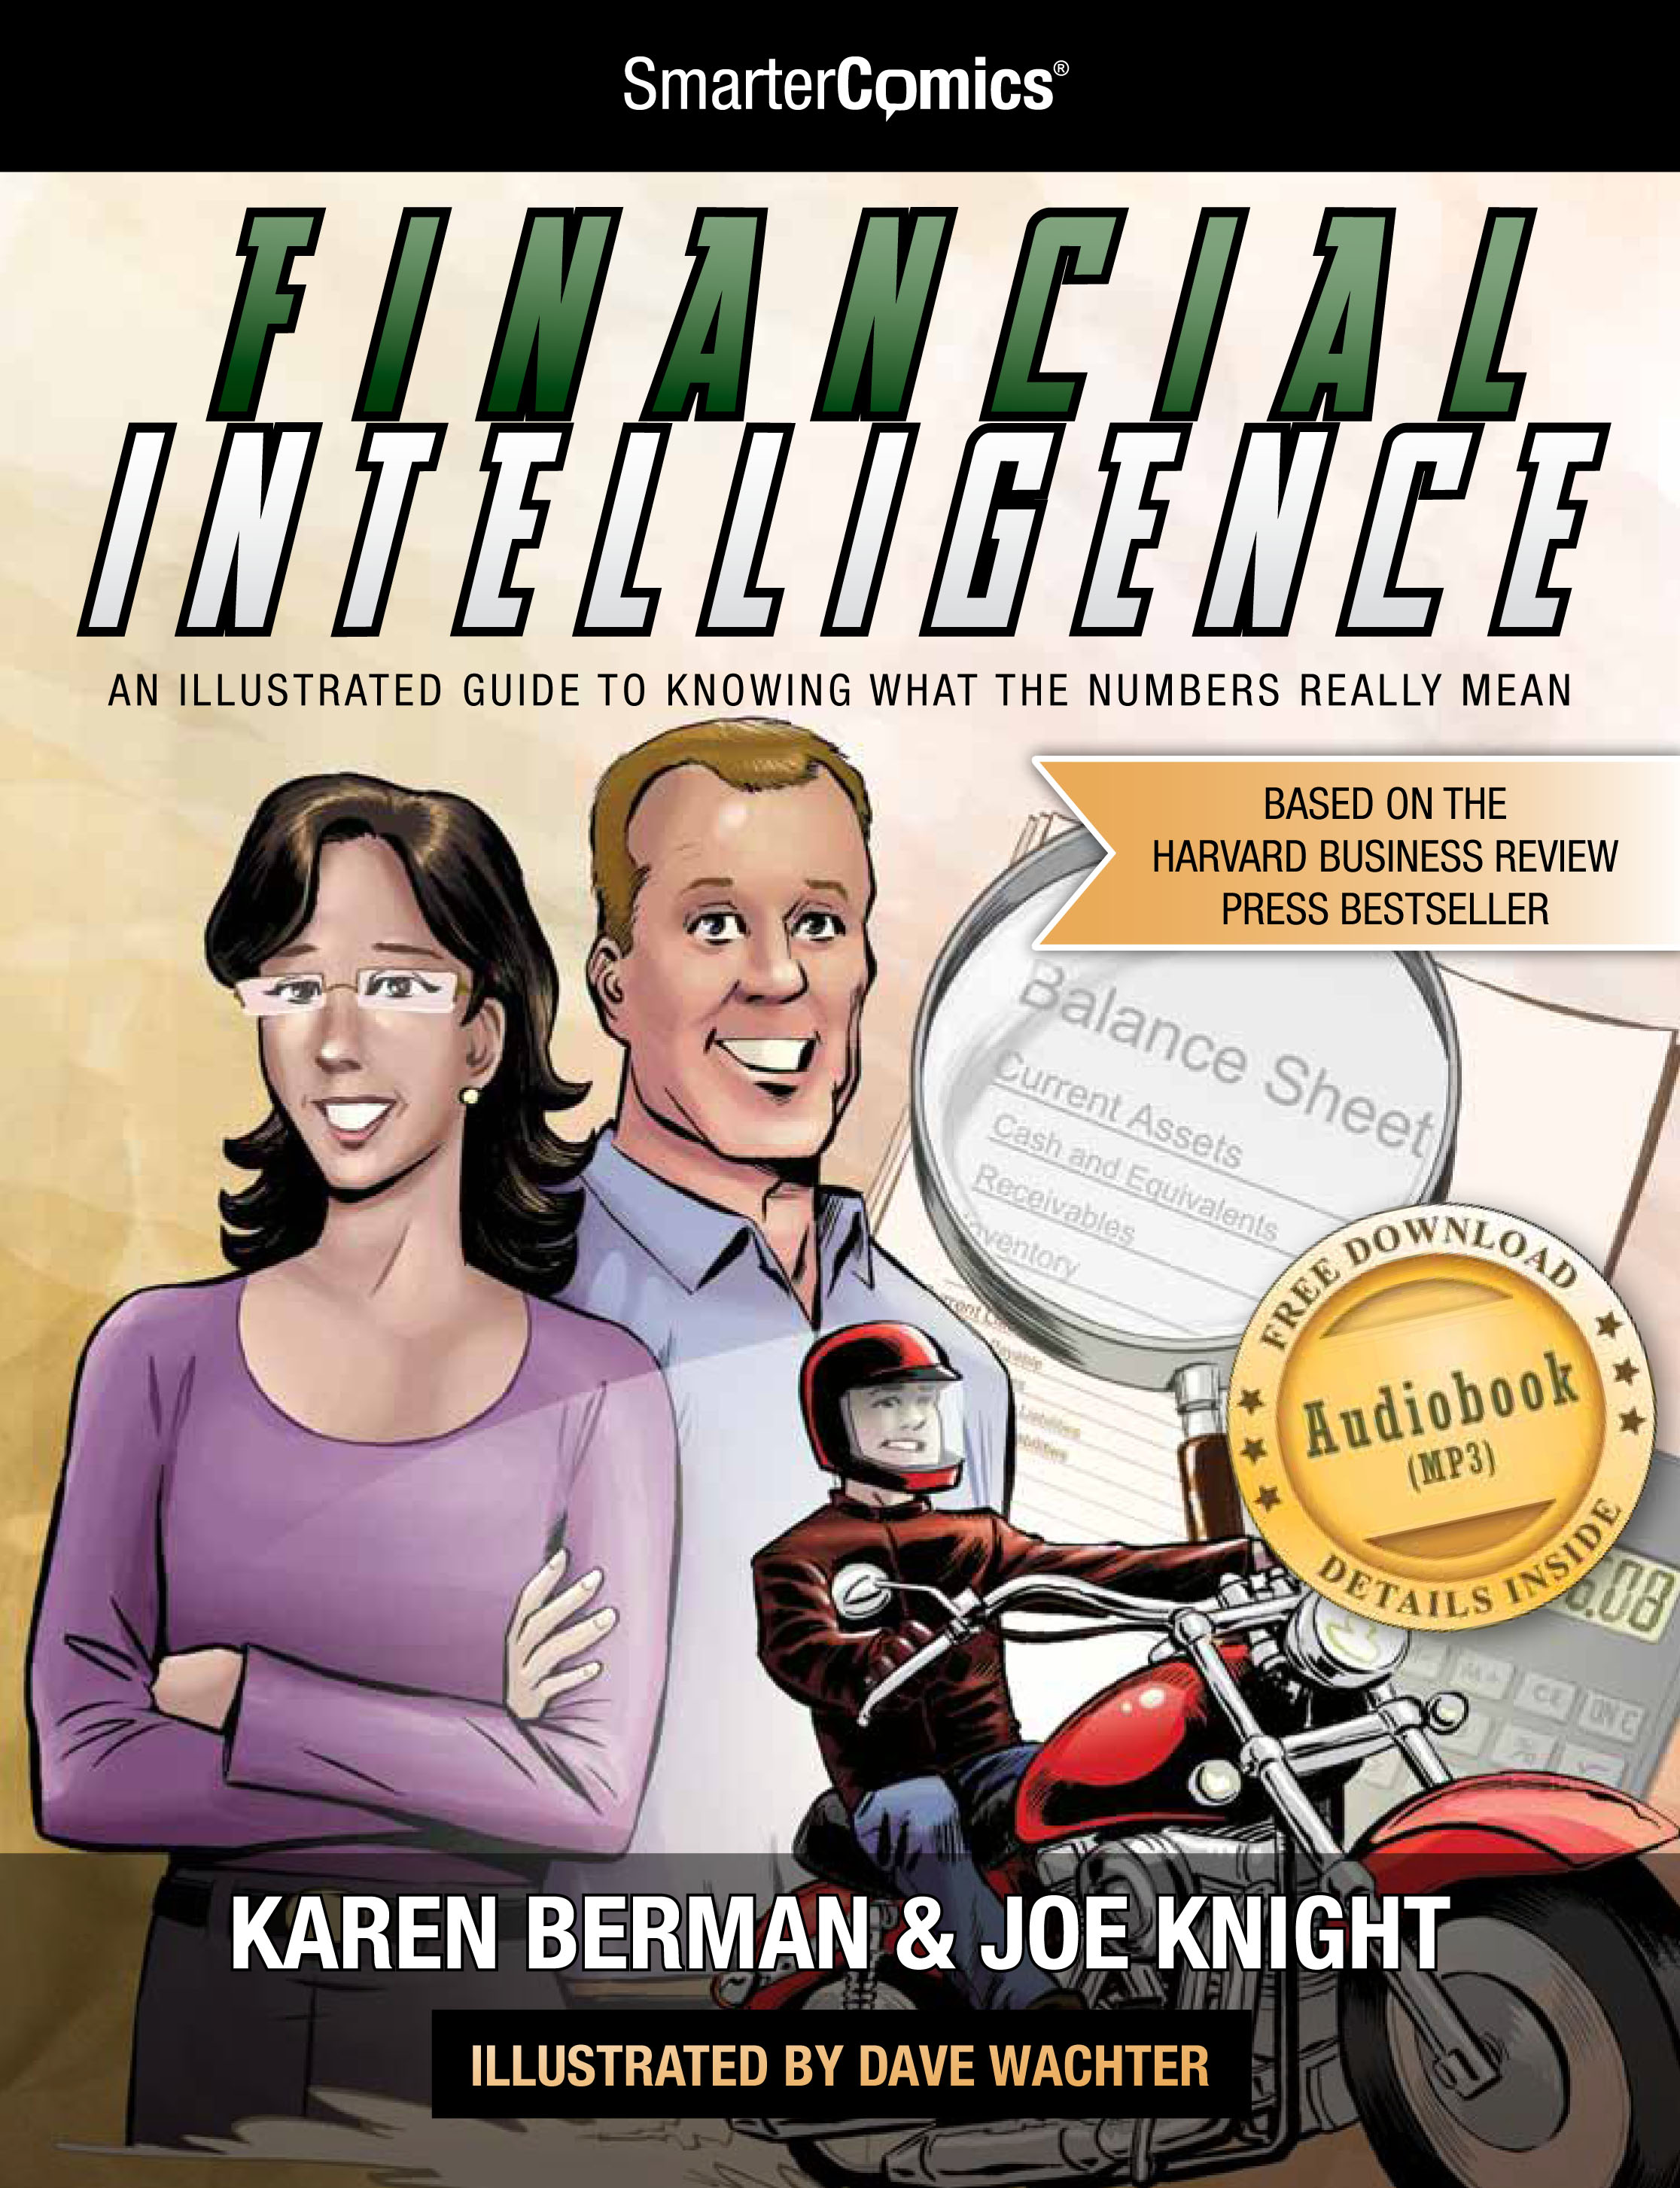 Find out more about the Financial Intelligence Comic book